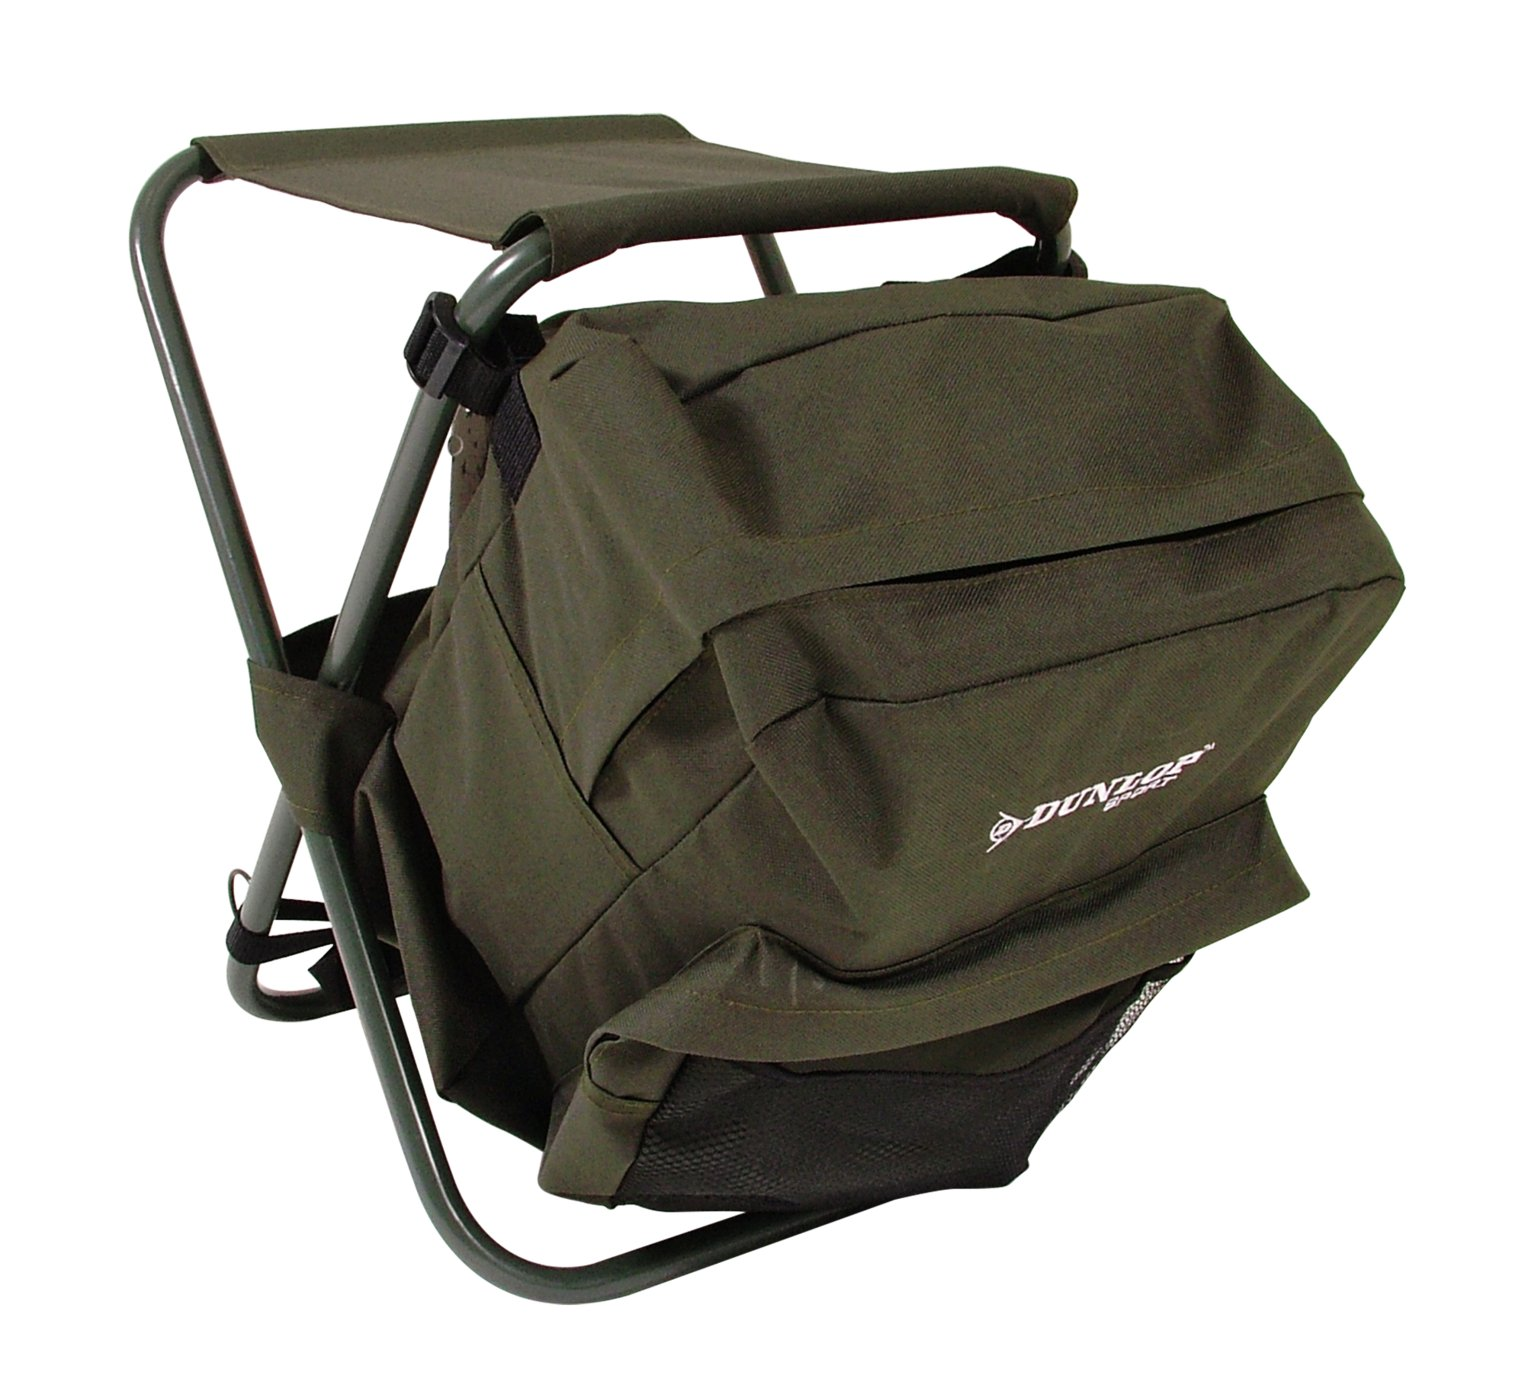 Dunlop Fishing Stool with Rucksack